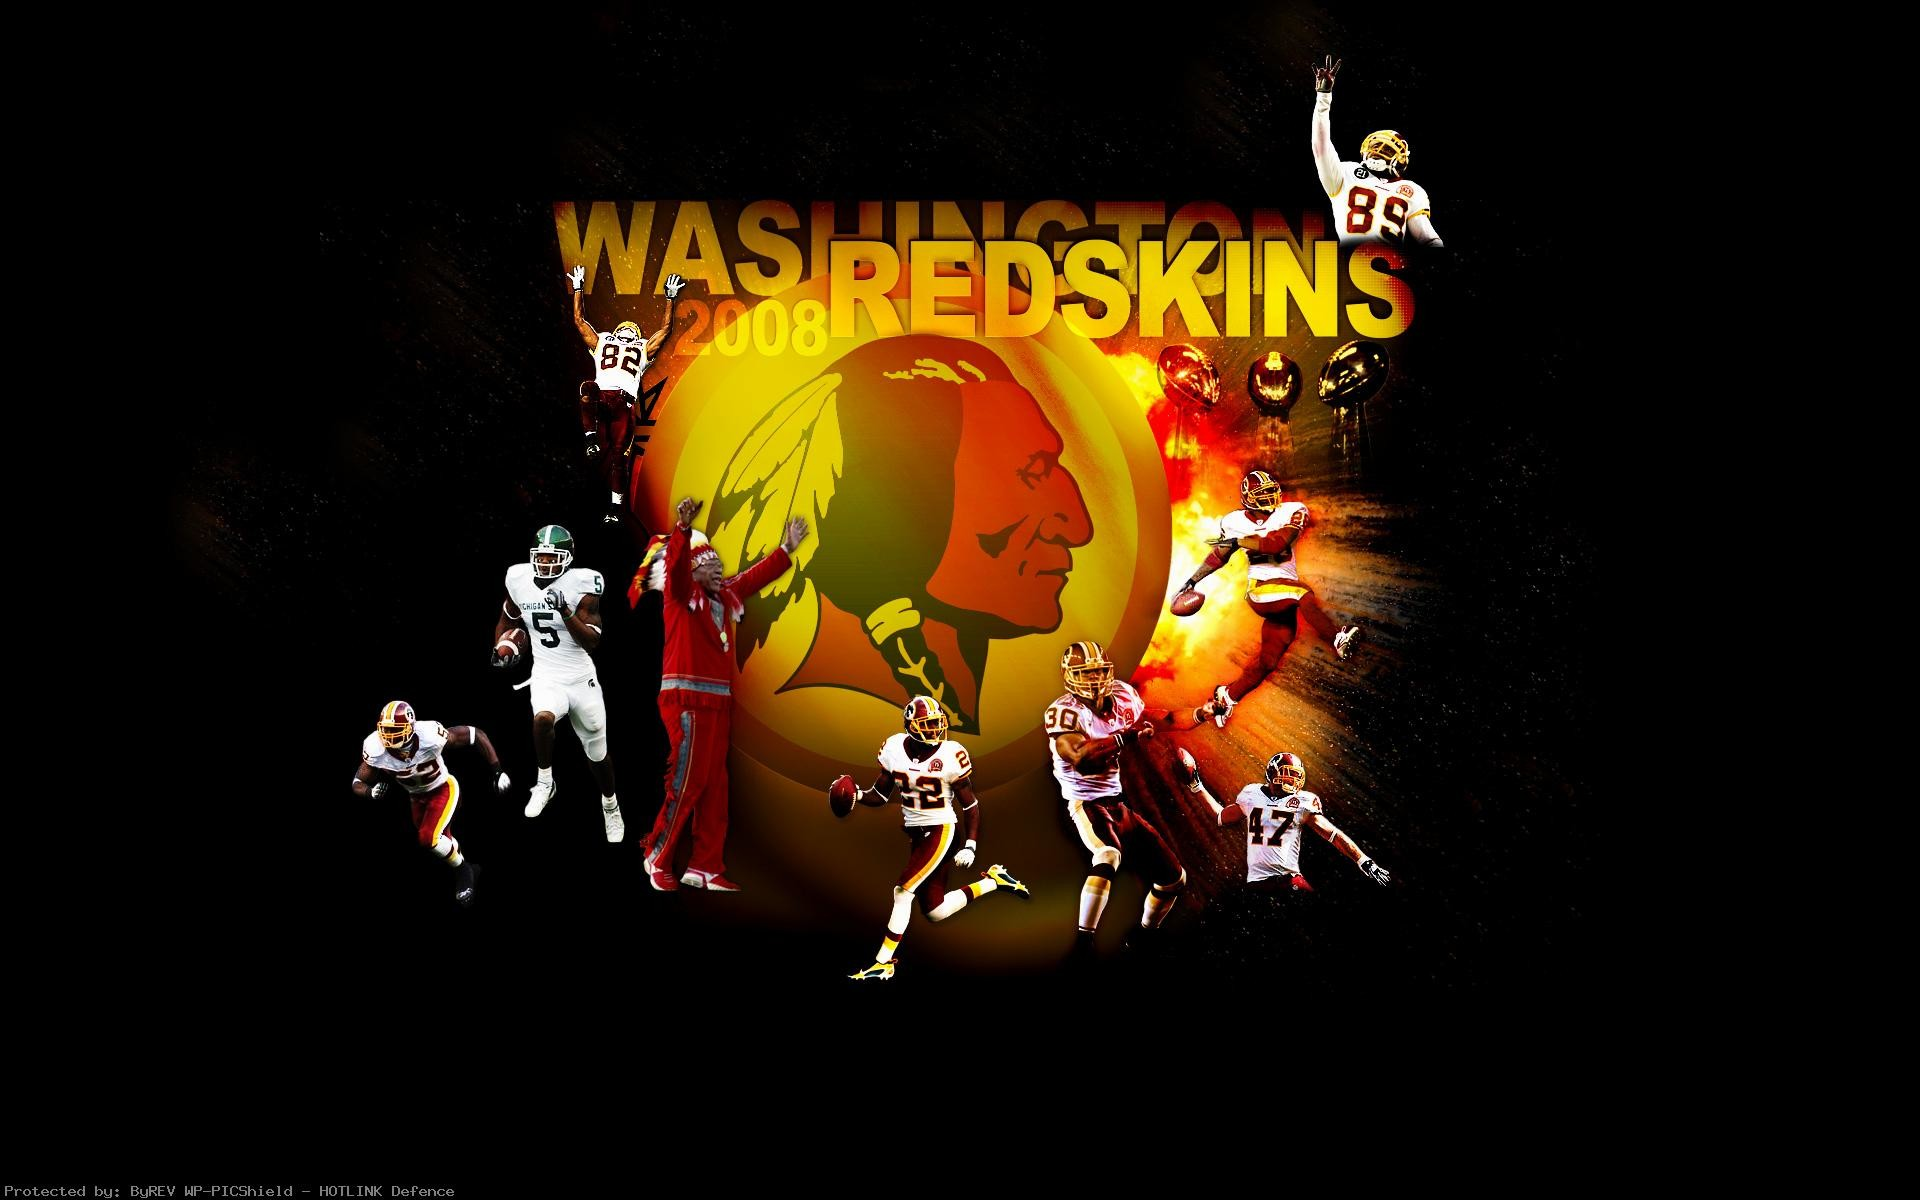 65 Redskins Wallpaper For Iphone